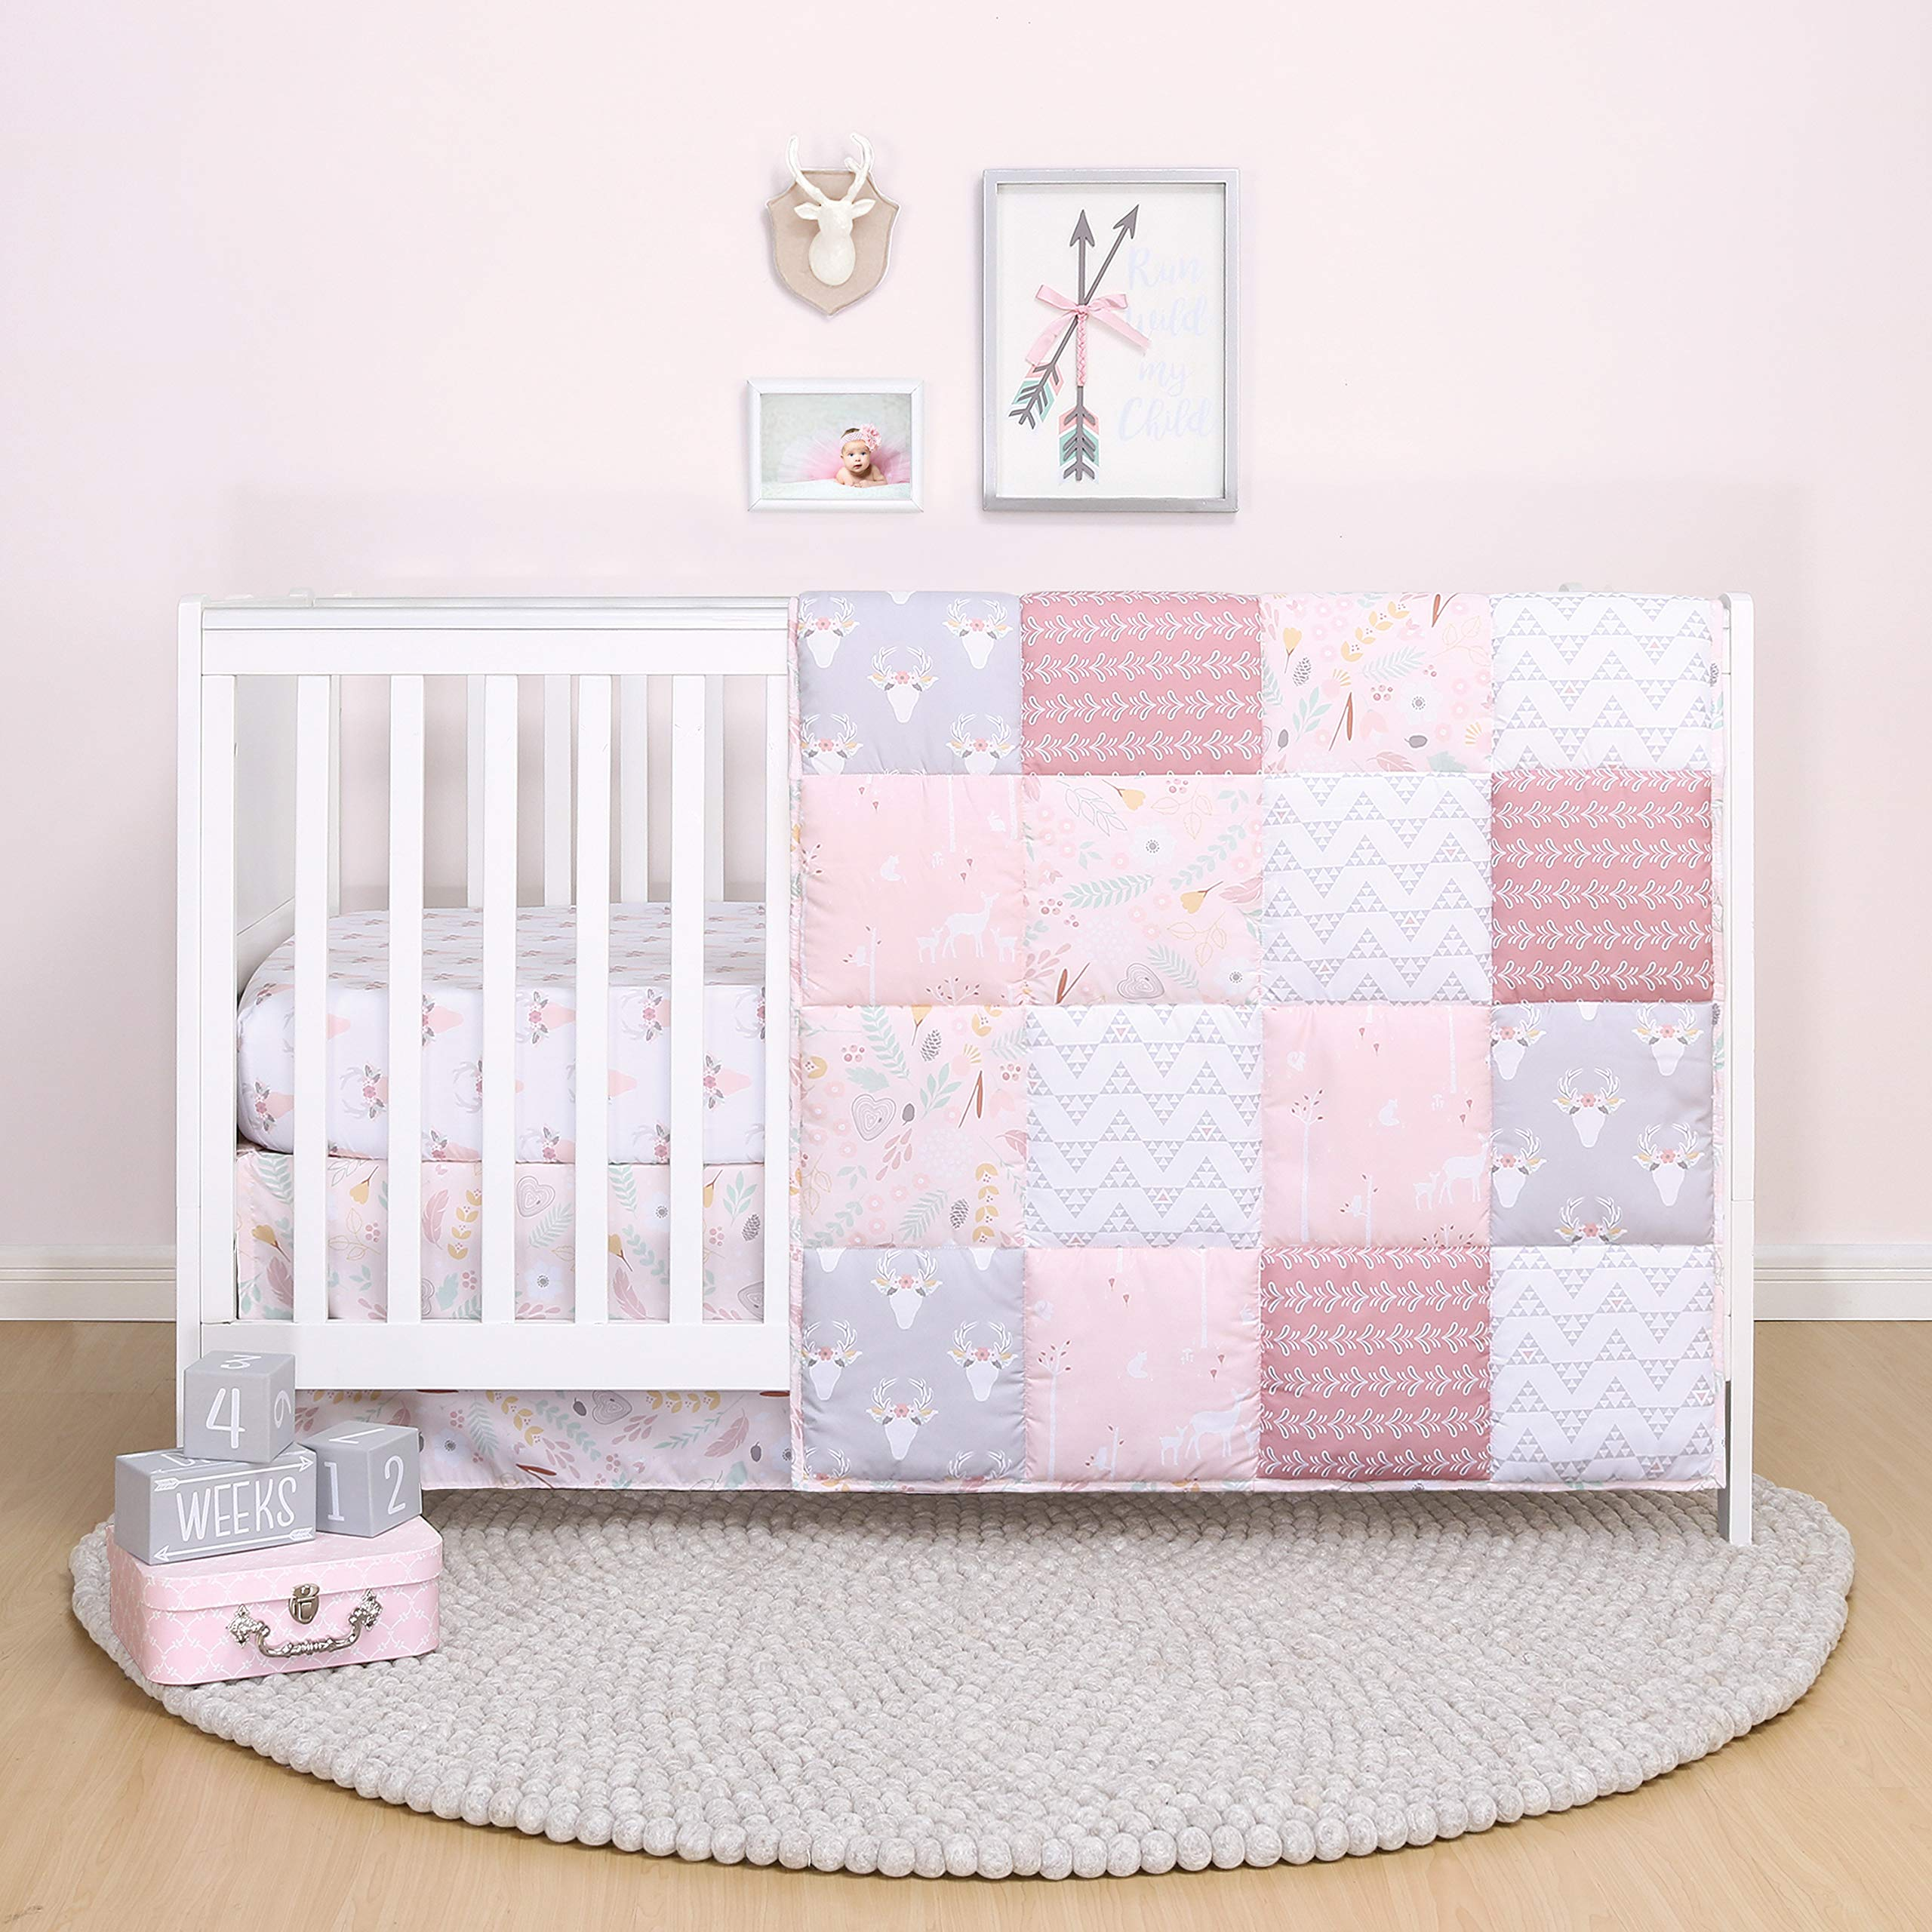 The Peanutshell Pink Floral Crib Bedding Set for Baby Girls - Quilt, Fitted Sheet, Dust Ruffle Included by The Peanutshell